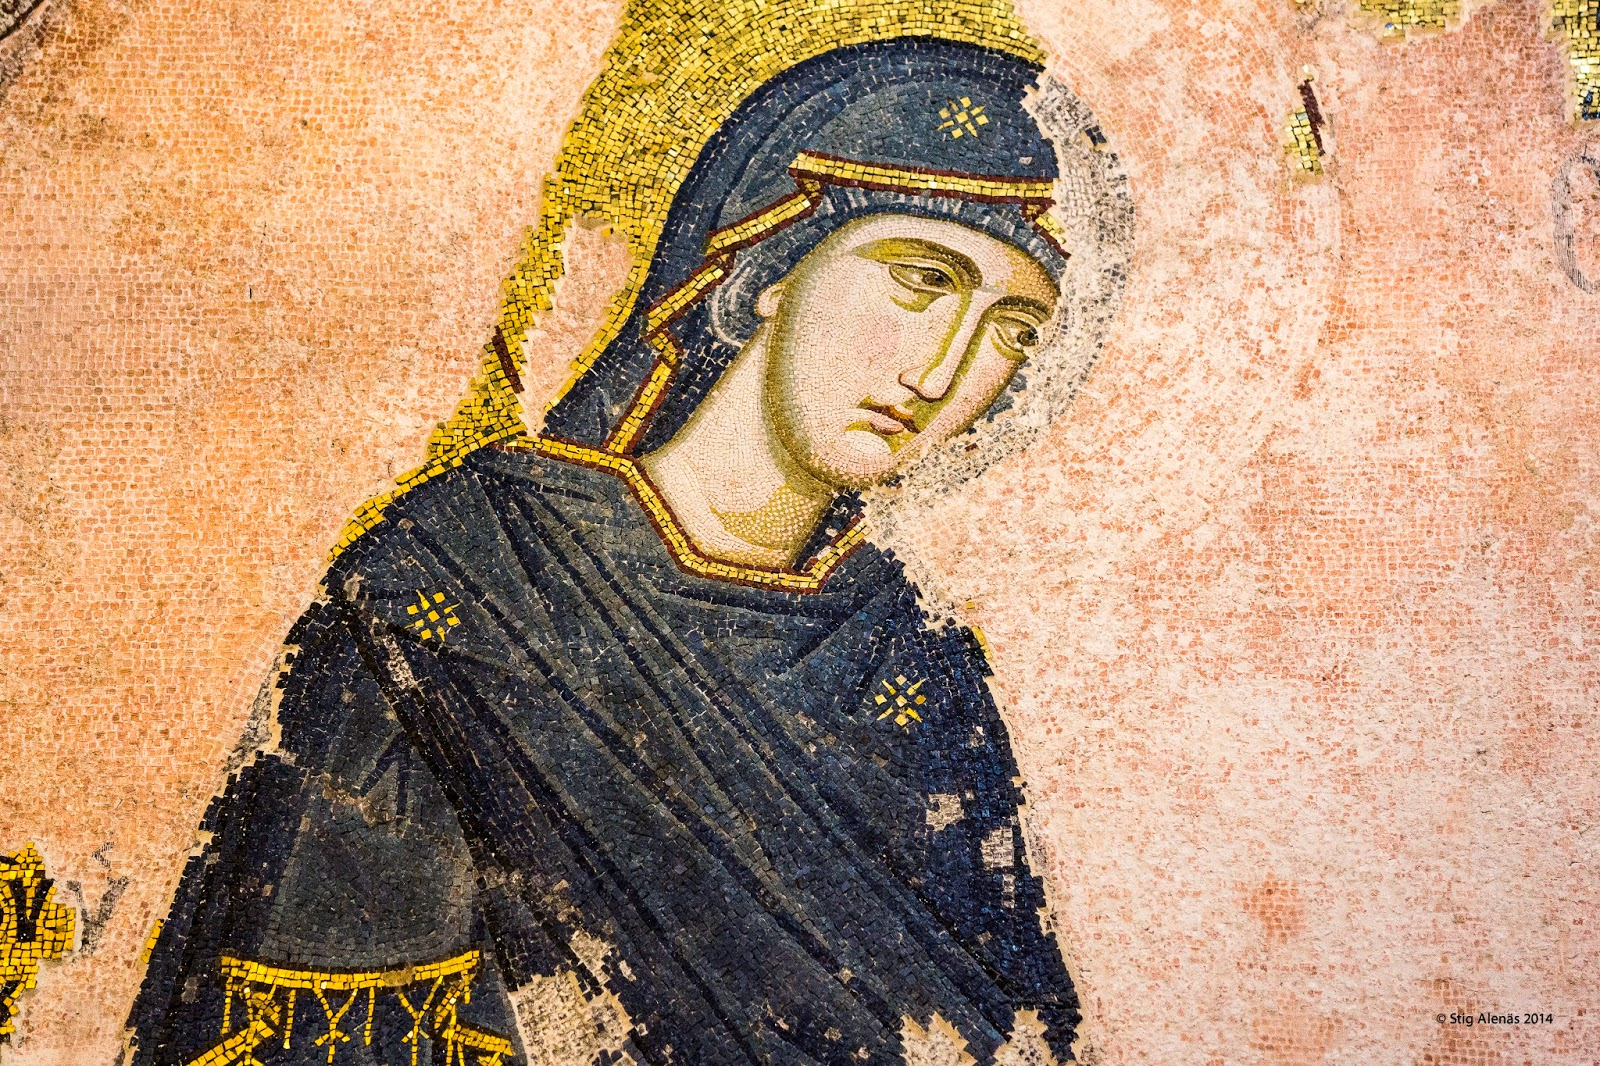 turkey, travel, virgin, constantinople, editorial, church, heritage, architecture, interior, mosaic, holy, istanbul, religion, art, ancient, byzantine, christianity, mary, camii, kariye, chora, https://www.shutterstock.com/image-photo/mosaic-virgin-mary-chora-church-istanbul-533937526